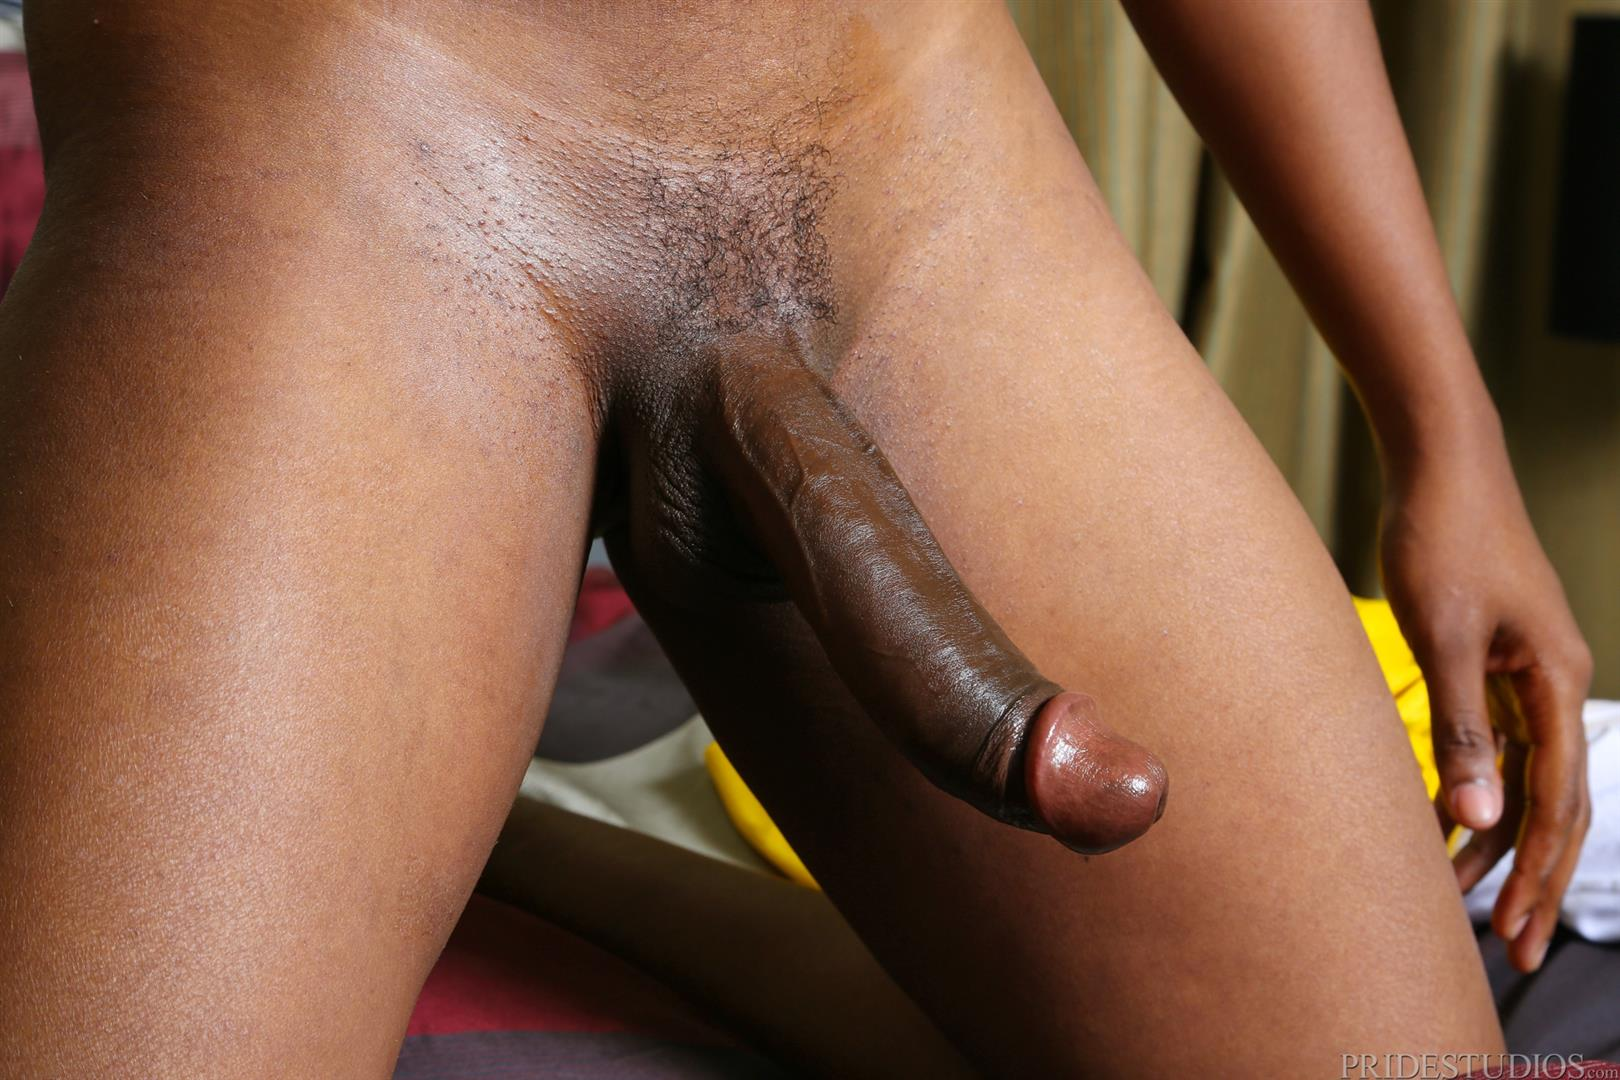 Black guy jerkin off